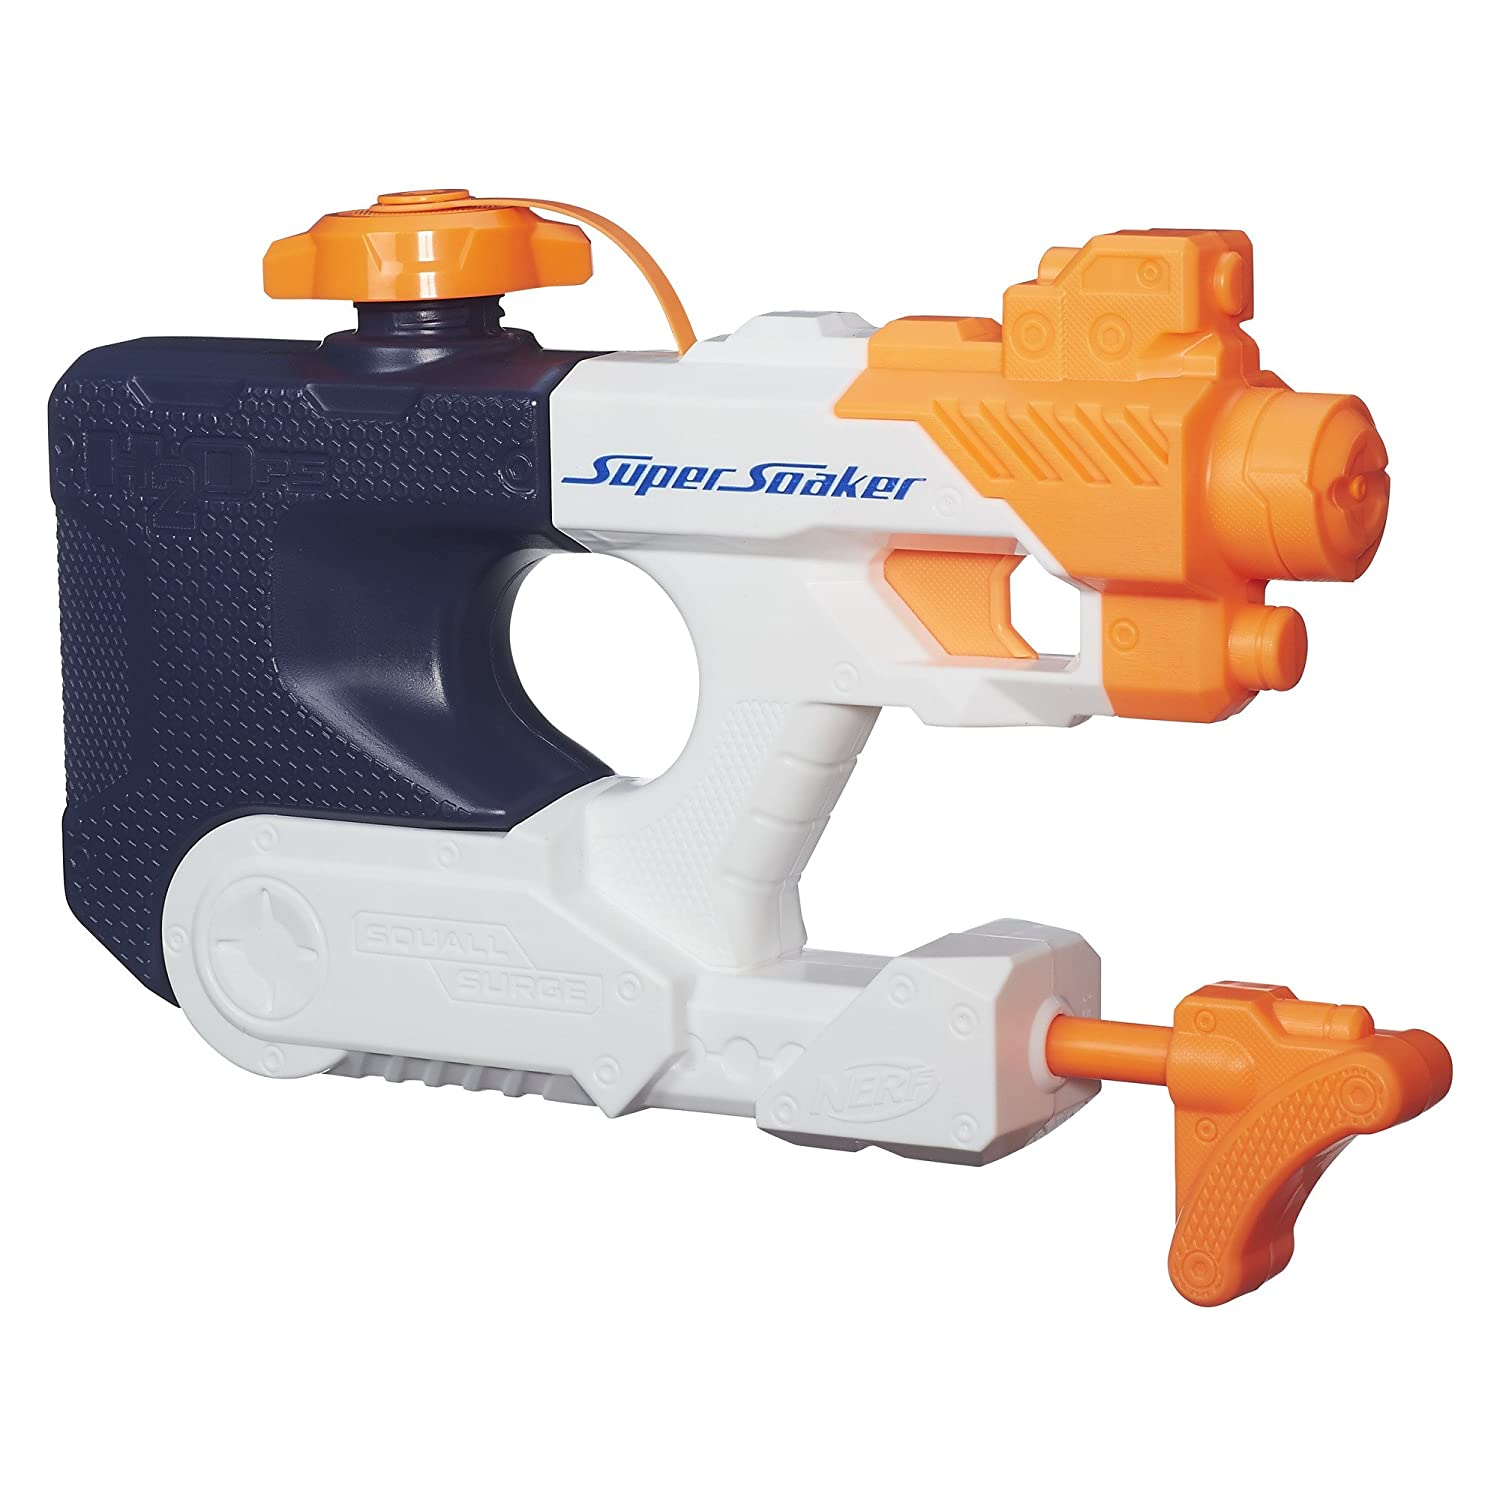 Nerf Super Soaker Squall Surge